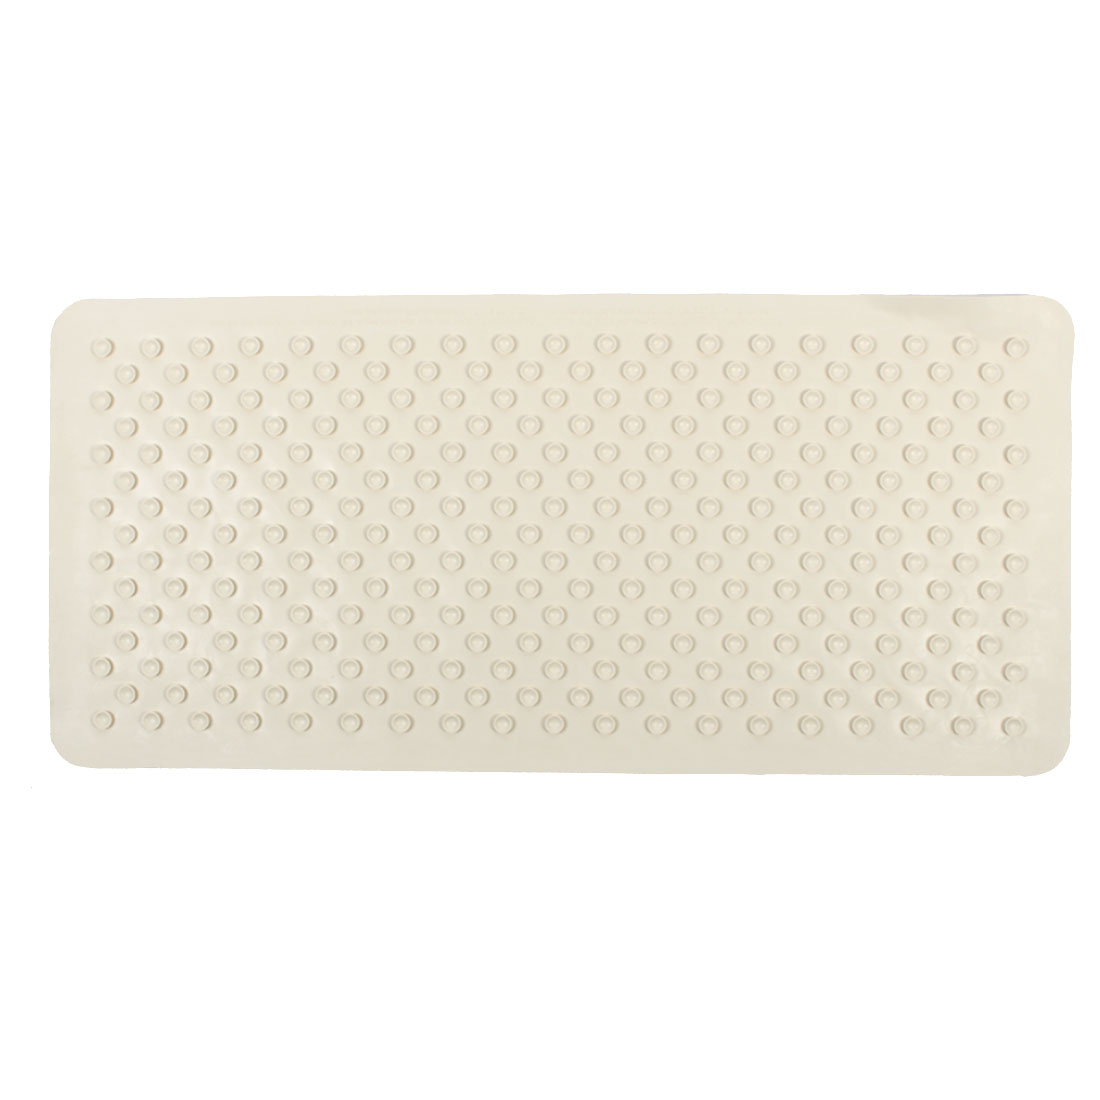 Hotel Bathroom Rubber Wave Pattern Non Slip Suction Floor Bath Mat Beige 35cm x 75cm